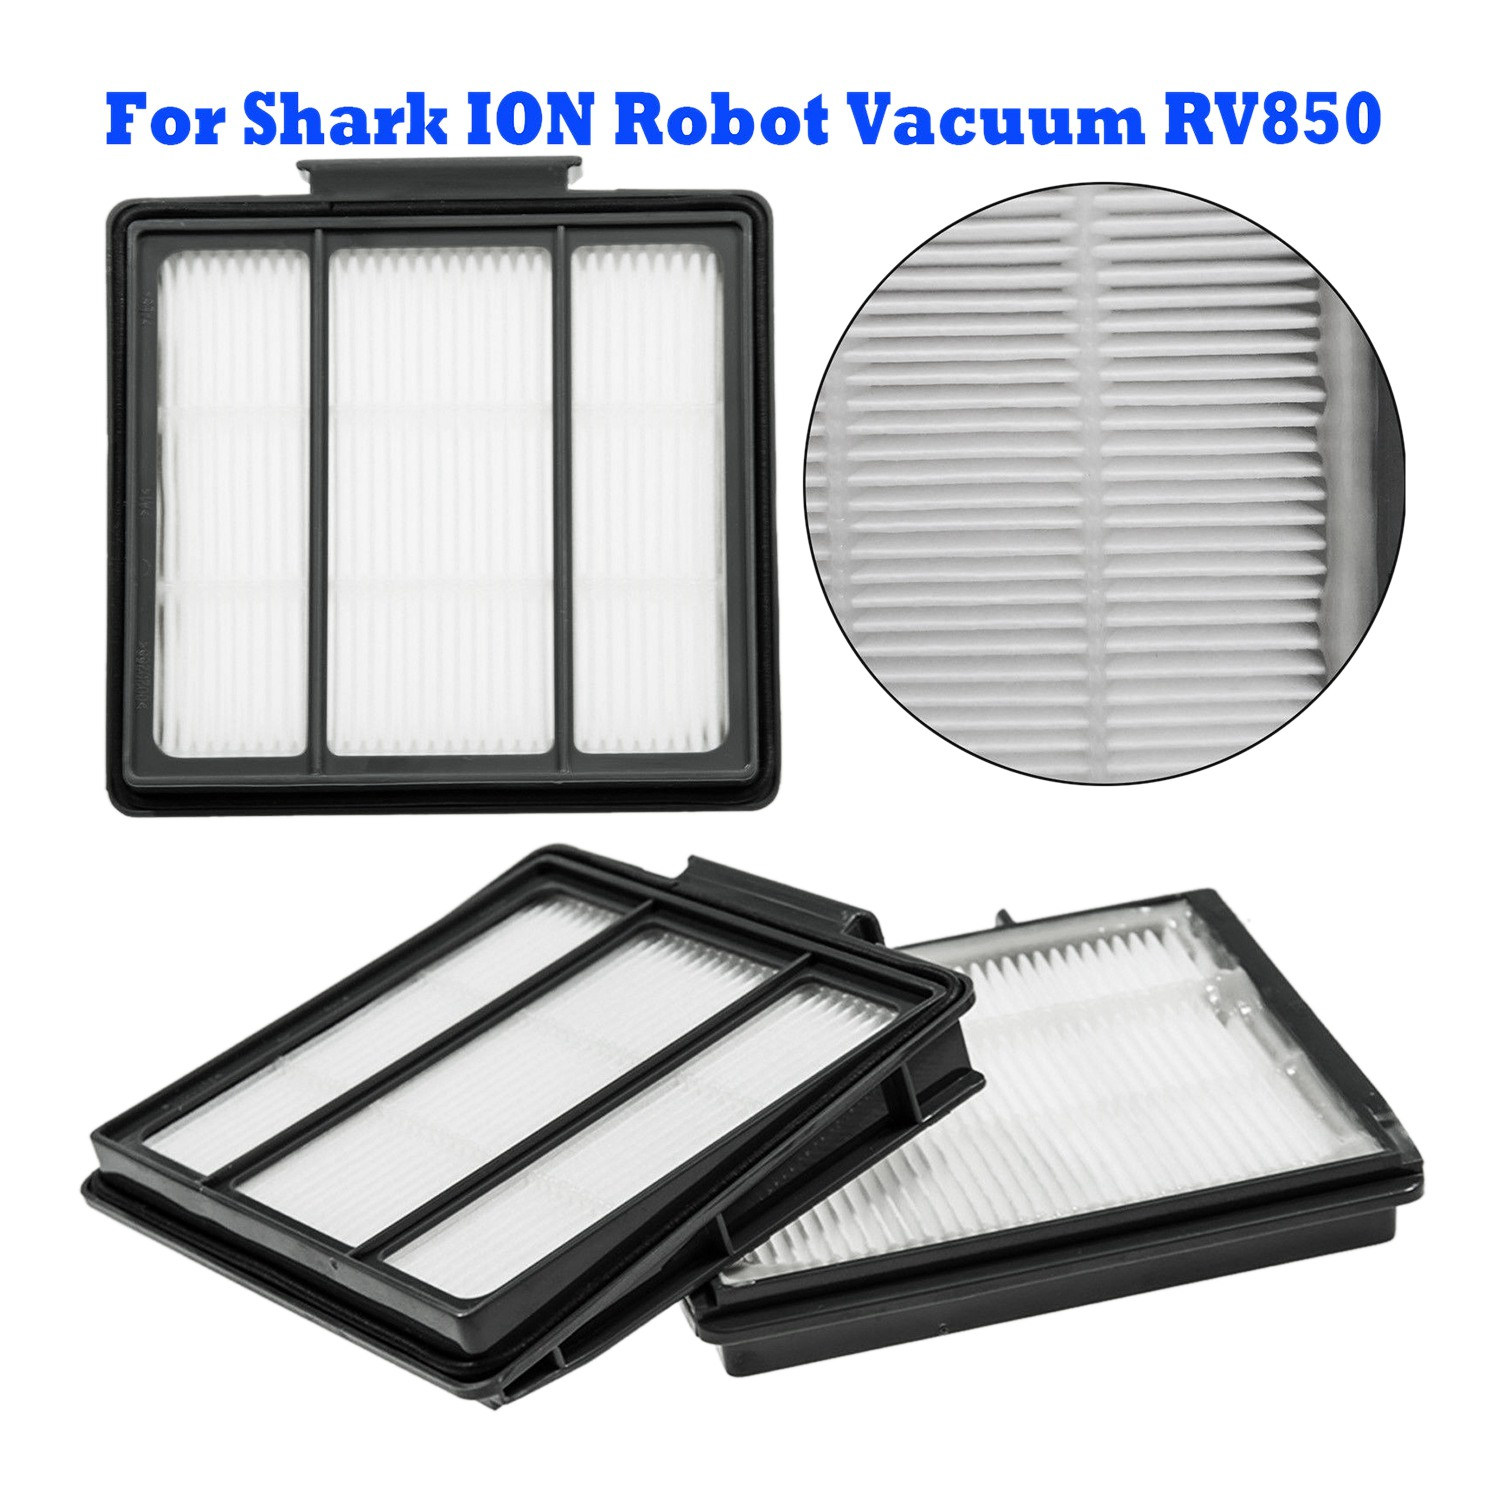 Home Appliances Practical Whyy-vacuum Cleaner Hepa Filter Kit Replacement For Shark Ion Robot Vacuum Rv850 With Wlan